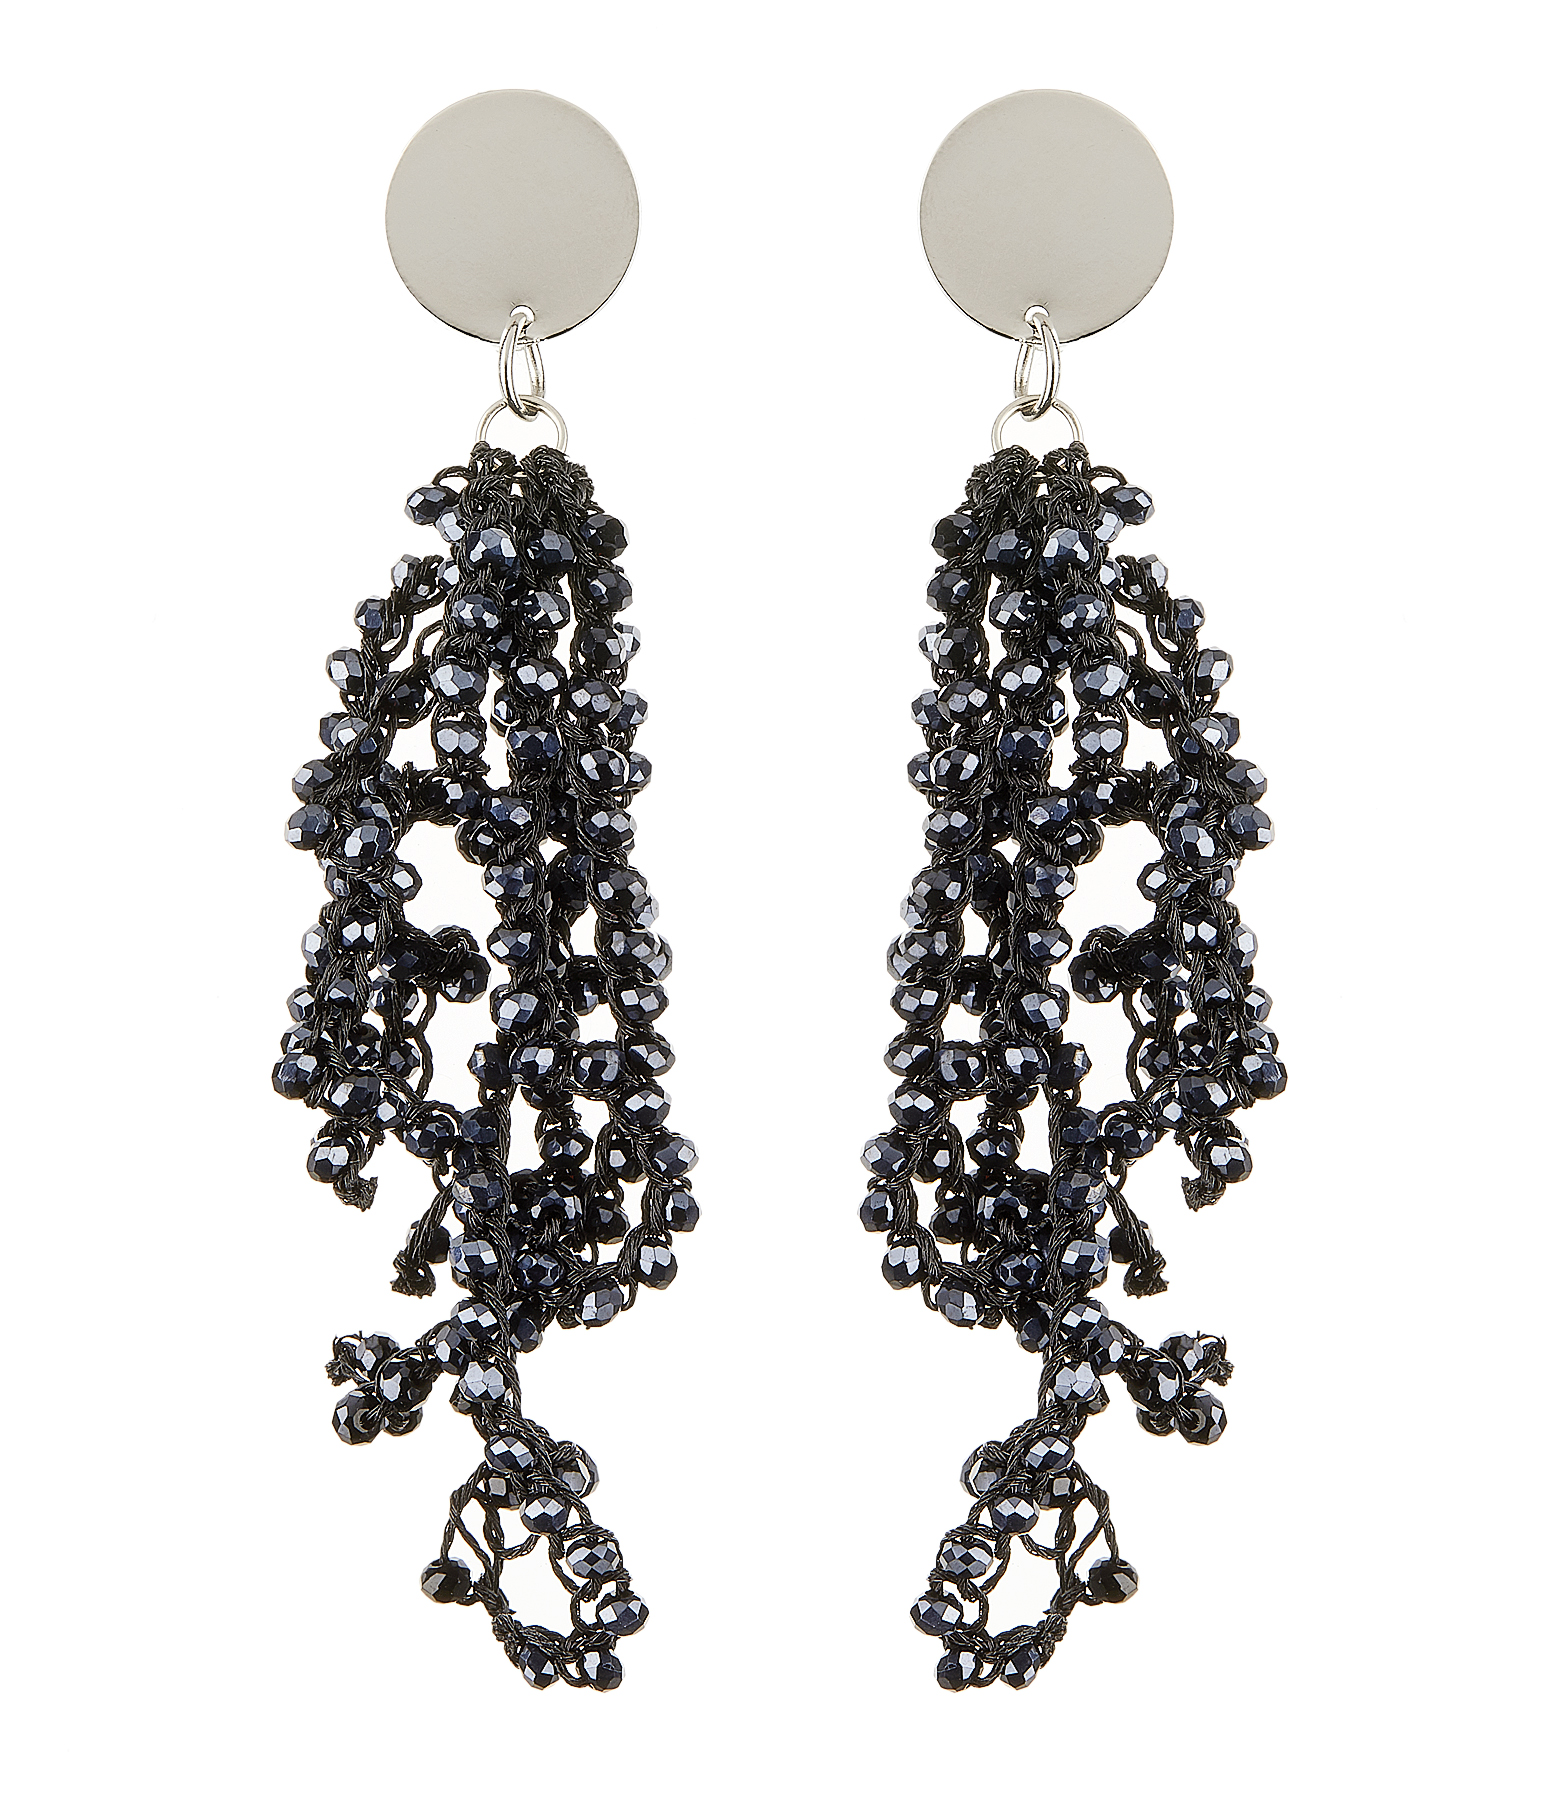 Clip On Earrings - Roch N - silver drop earring with navy blue crystal strands